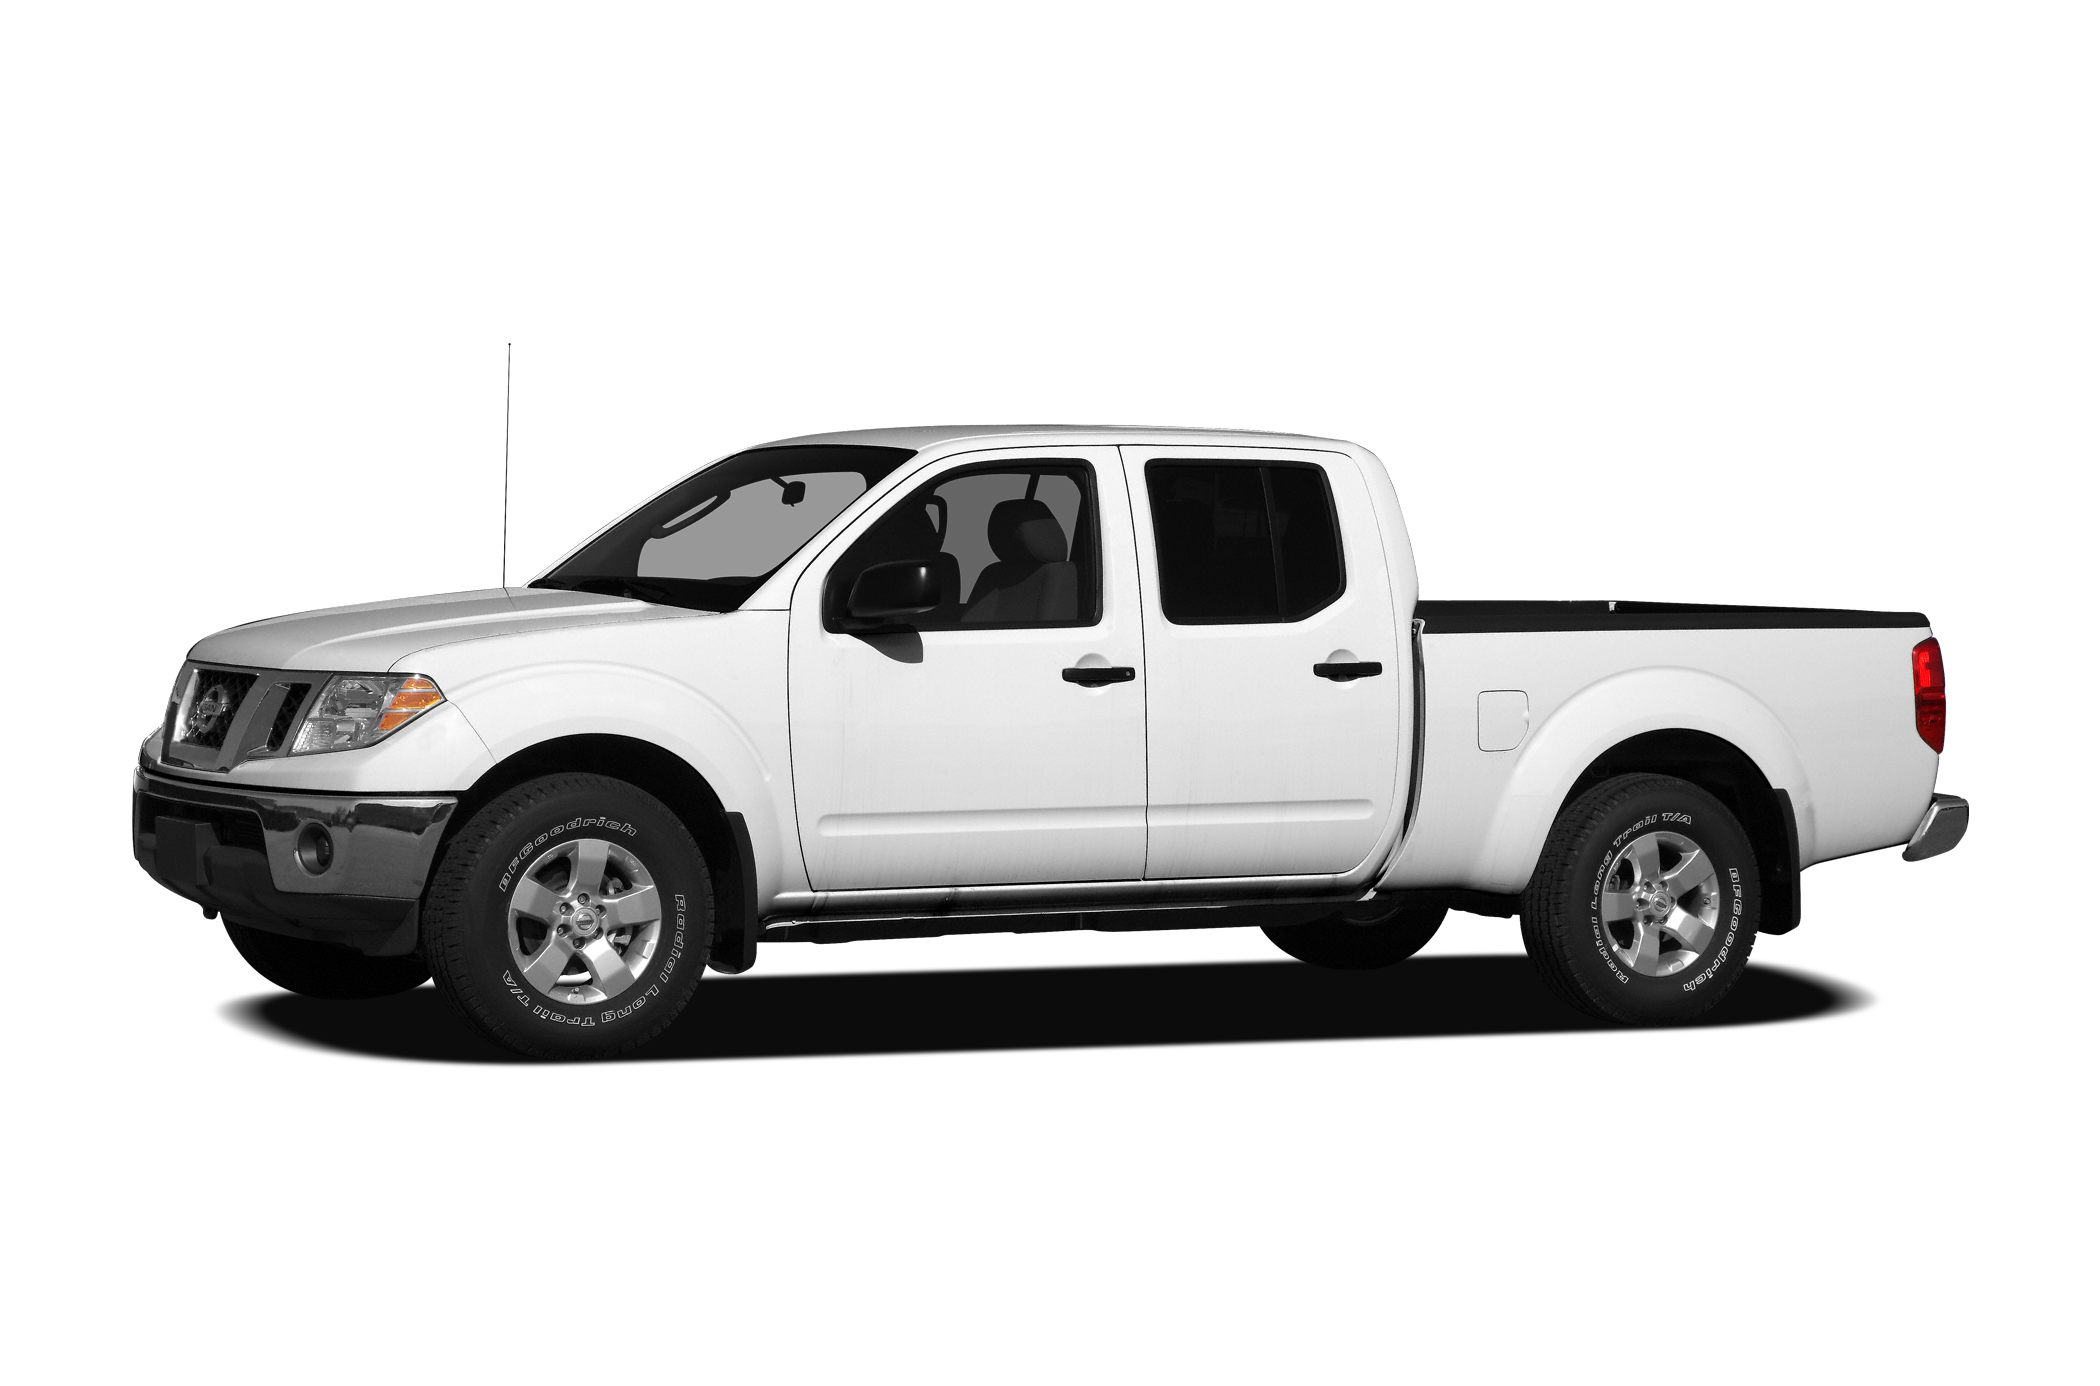 2011 Nissan Frontier SL Crew Cab Pickup for sale in Laurel for $29,150 with 34,090 miles.